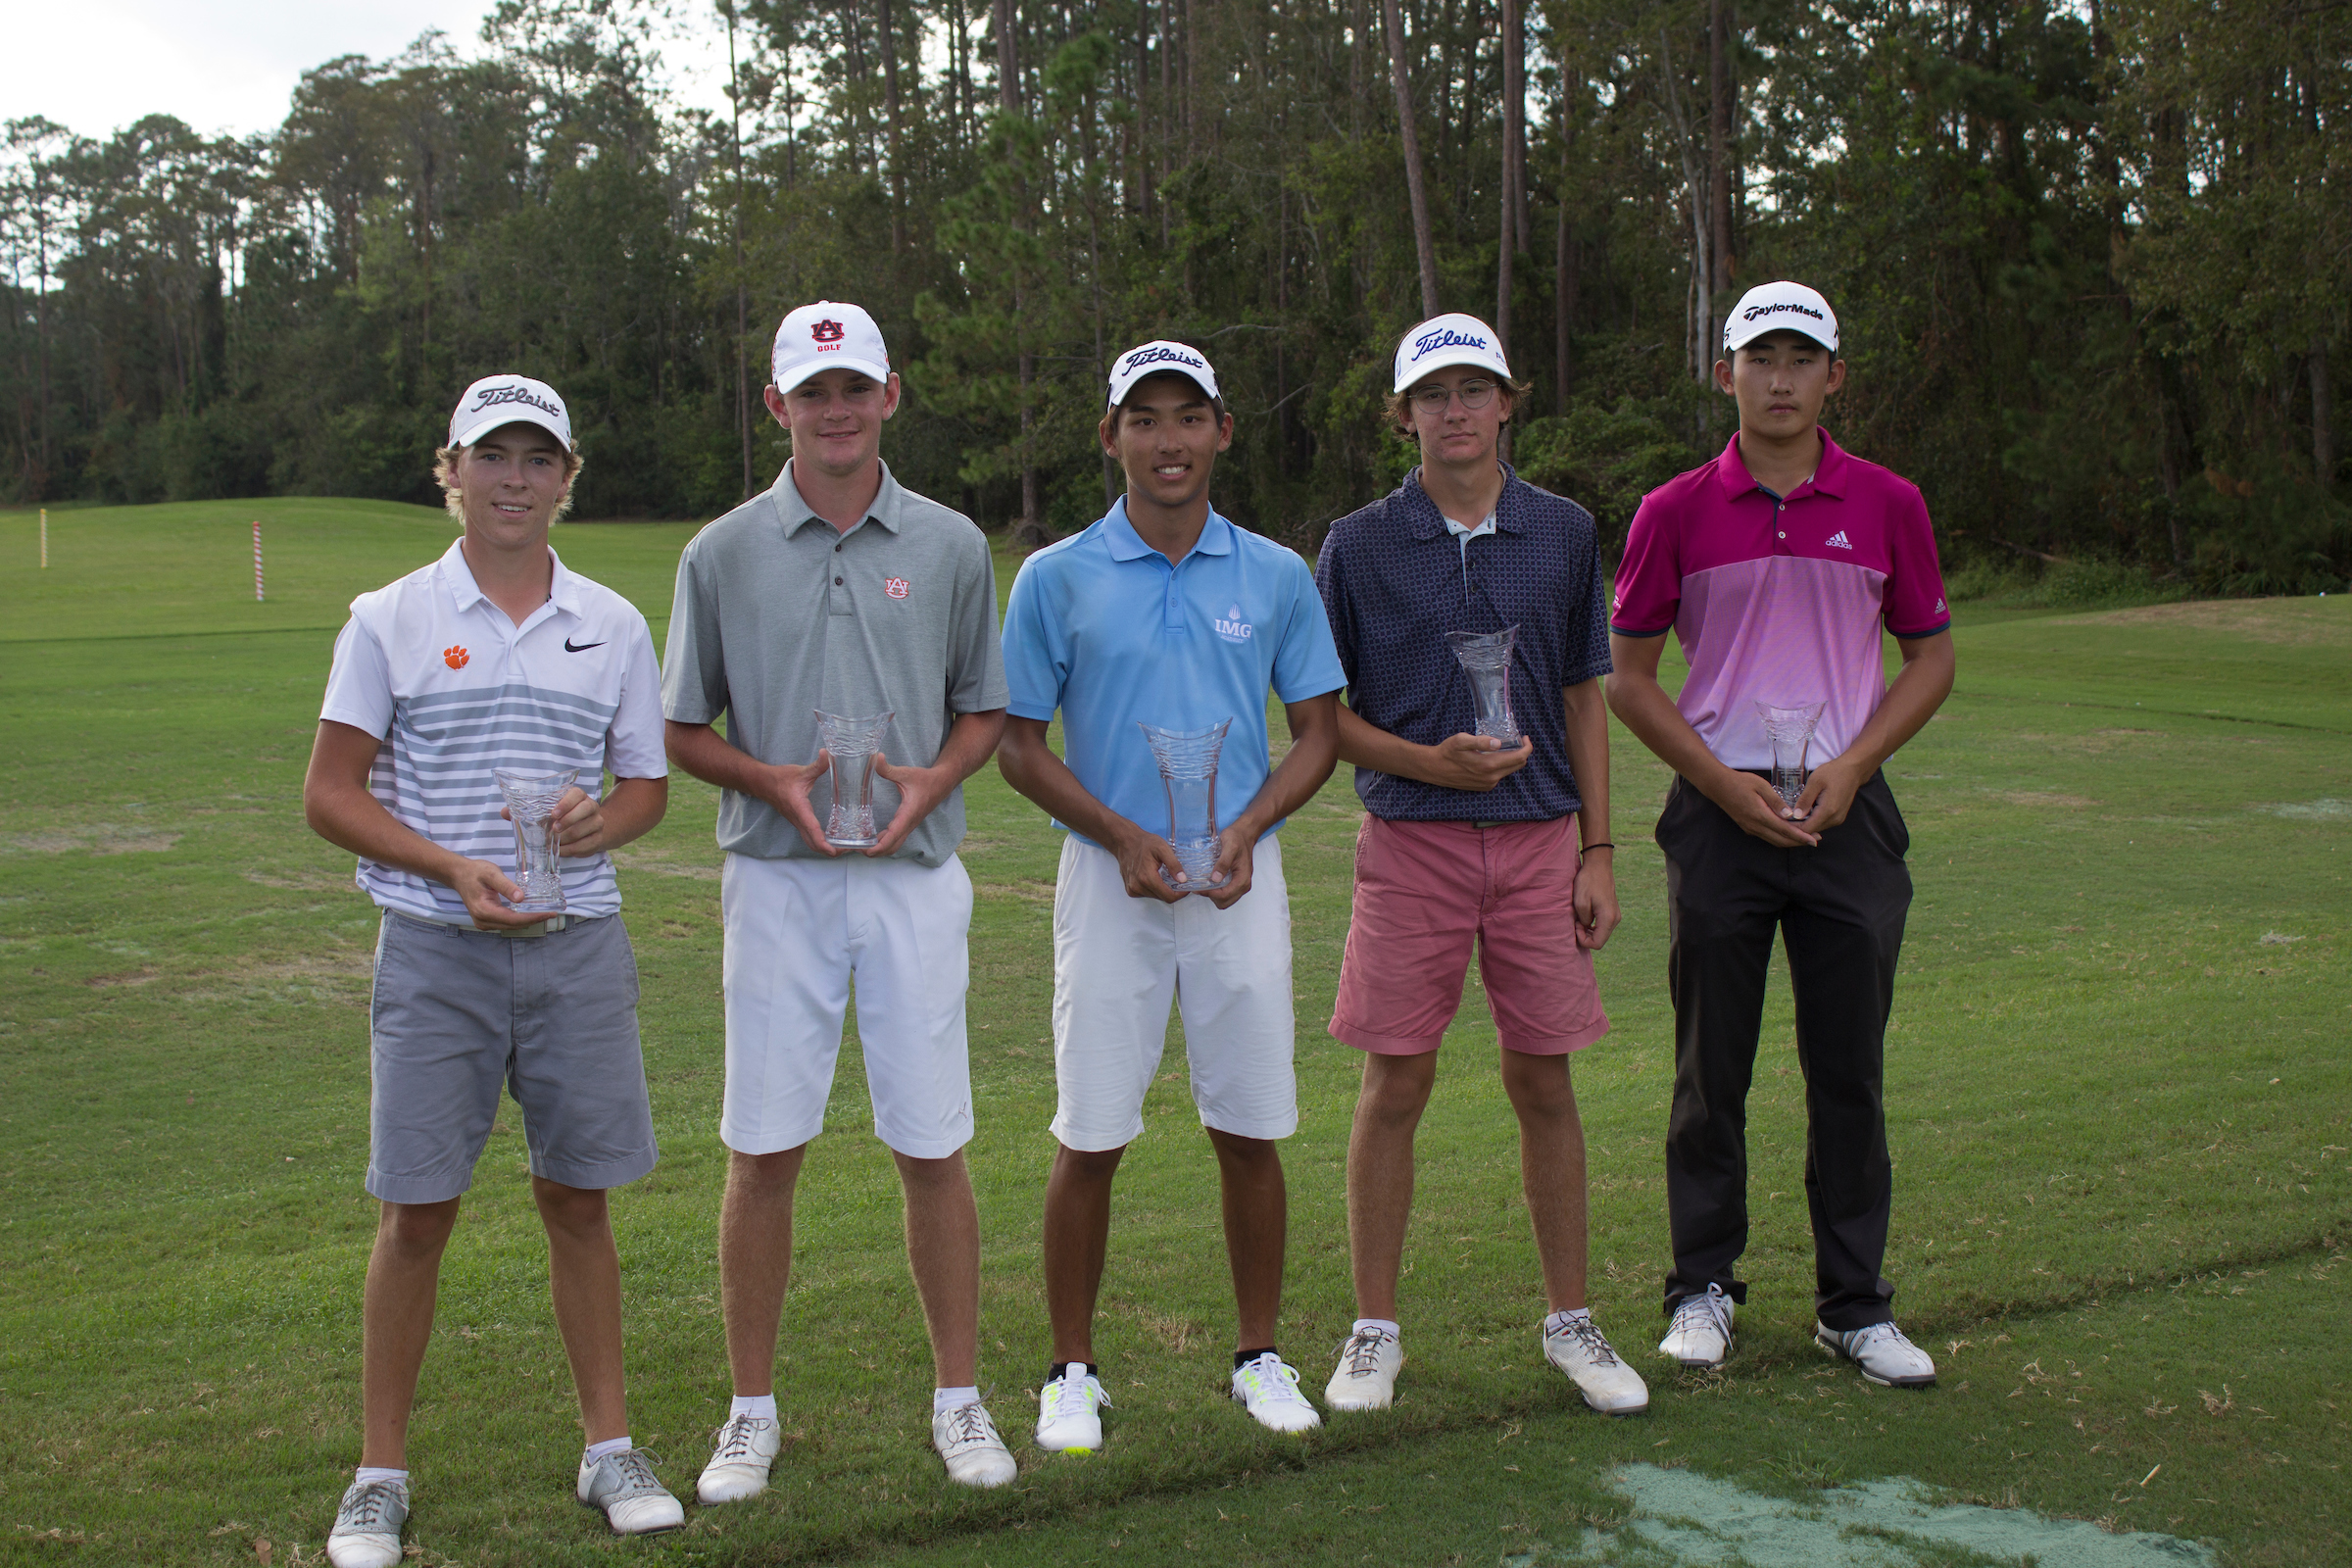 All Boys no banner, Teacharuangchit, Pendley, Coggin, Peng, Riggilio - 2017 - Billy Horschel Junior_1.jpg